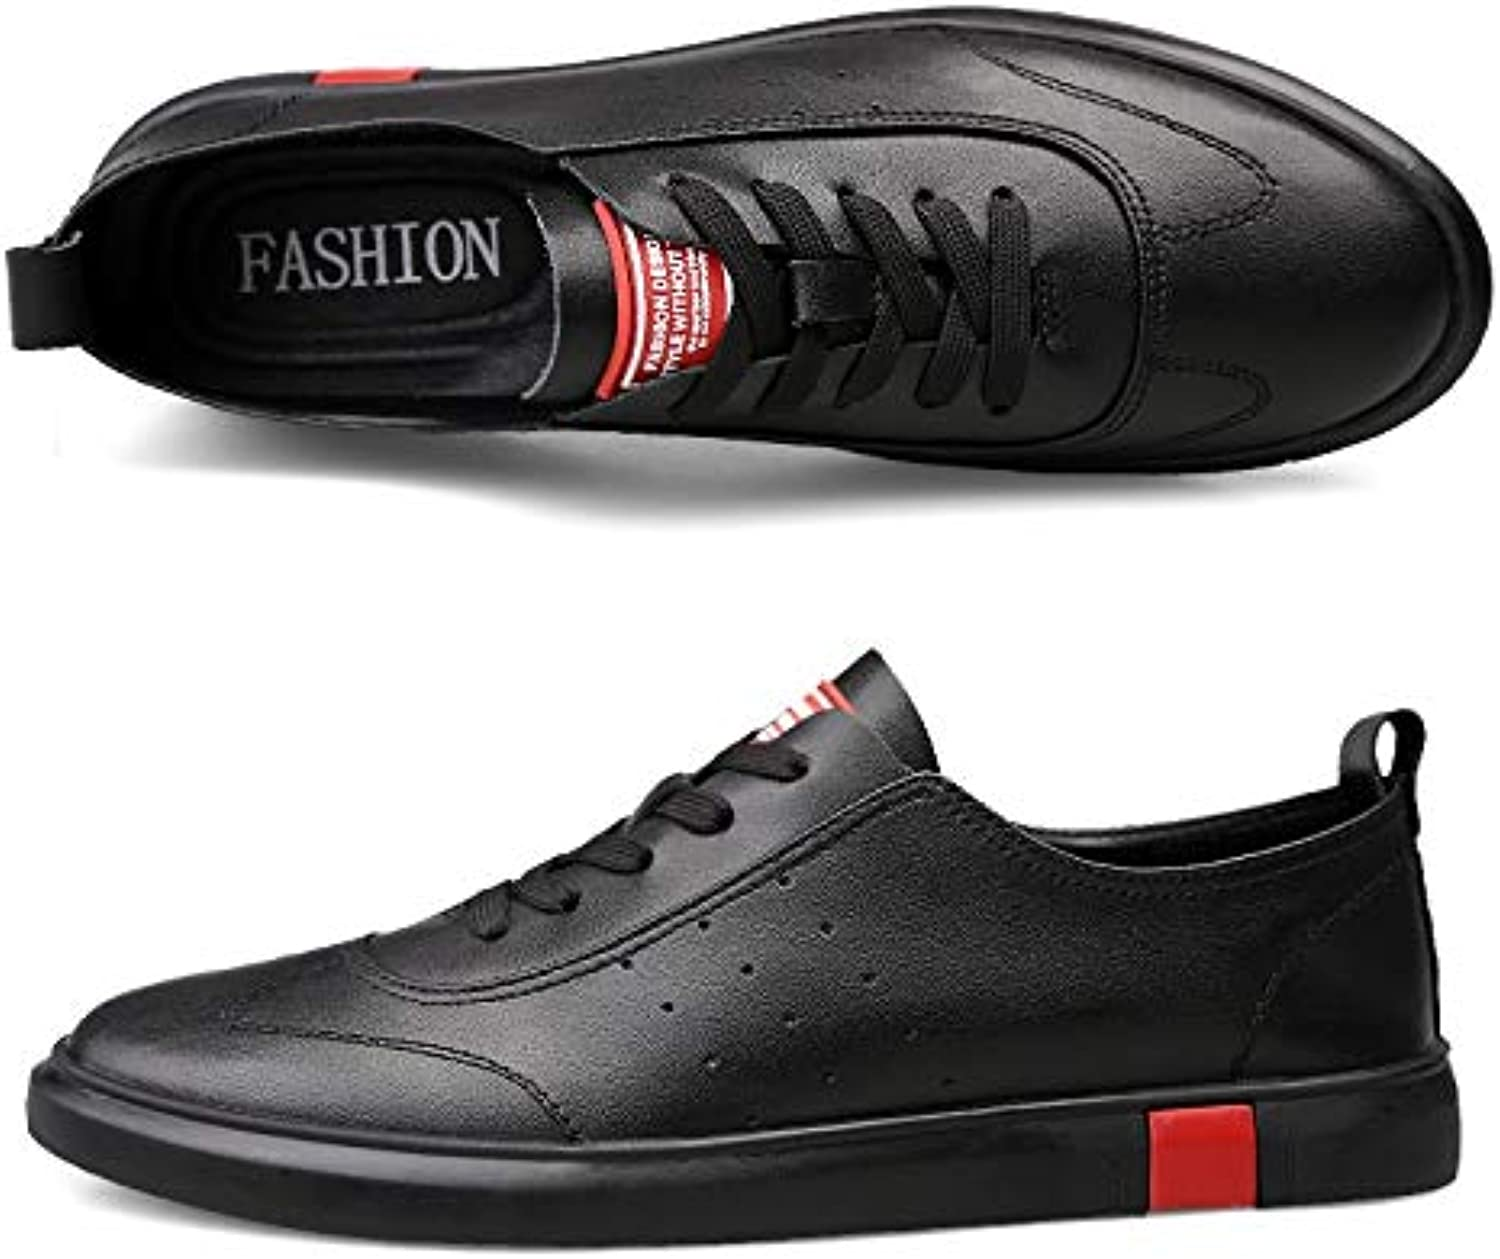 HAWEEL Casual Sports shoes Lightweight Breathable Solid color Casual shoes for Men (color Black Size 37)